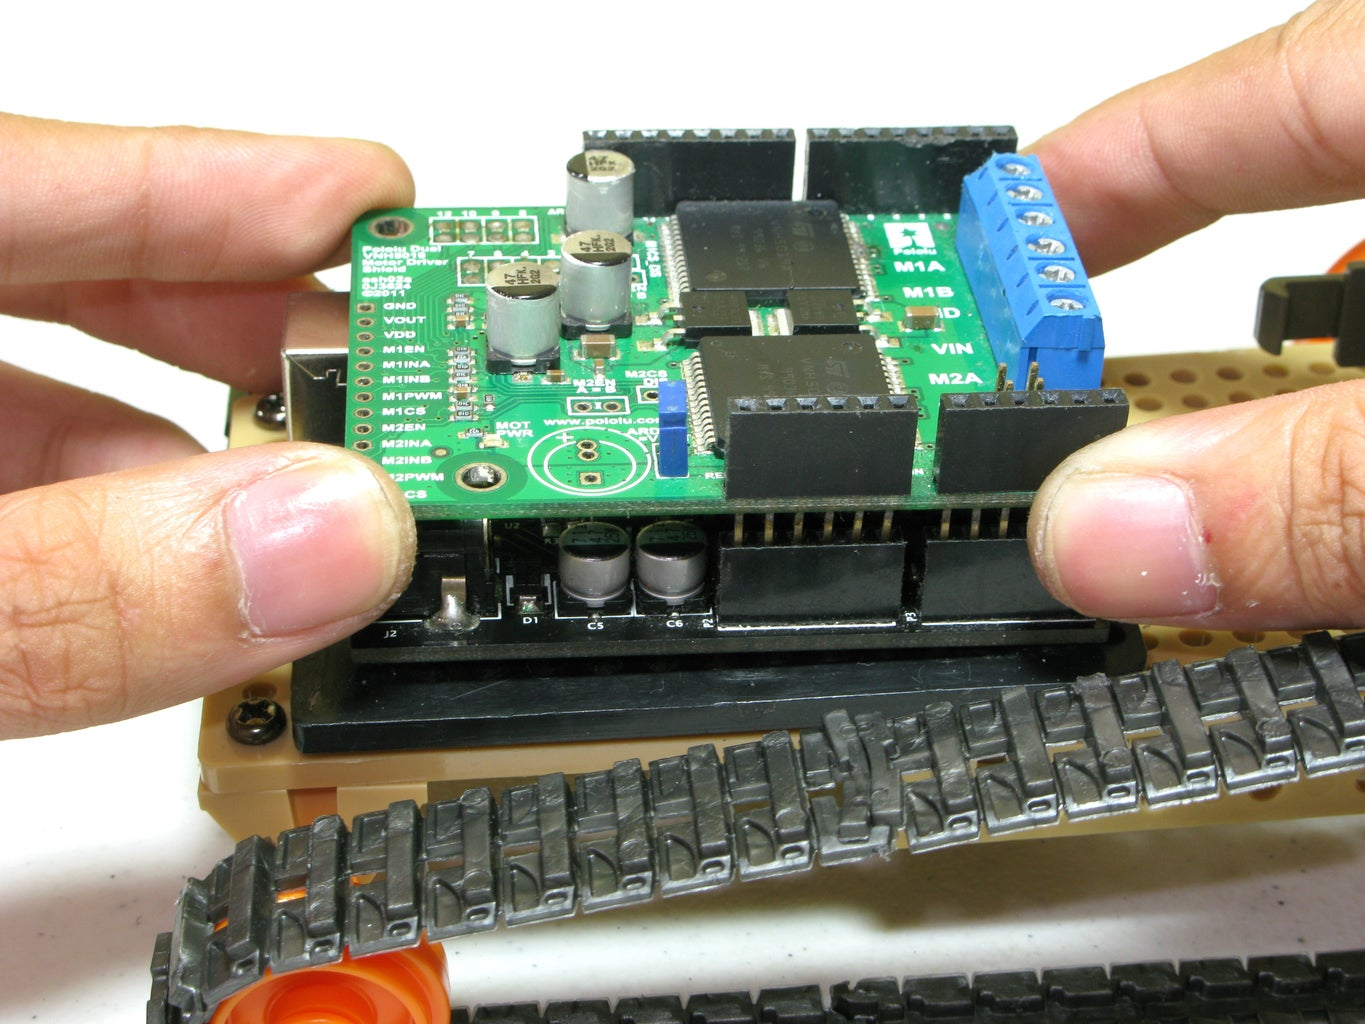 Mount the Arduino & Motor Driver